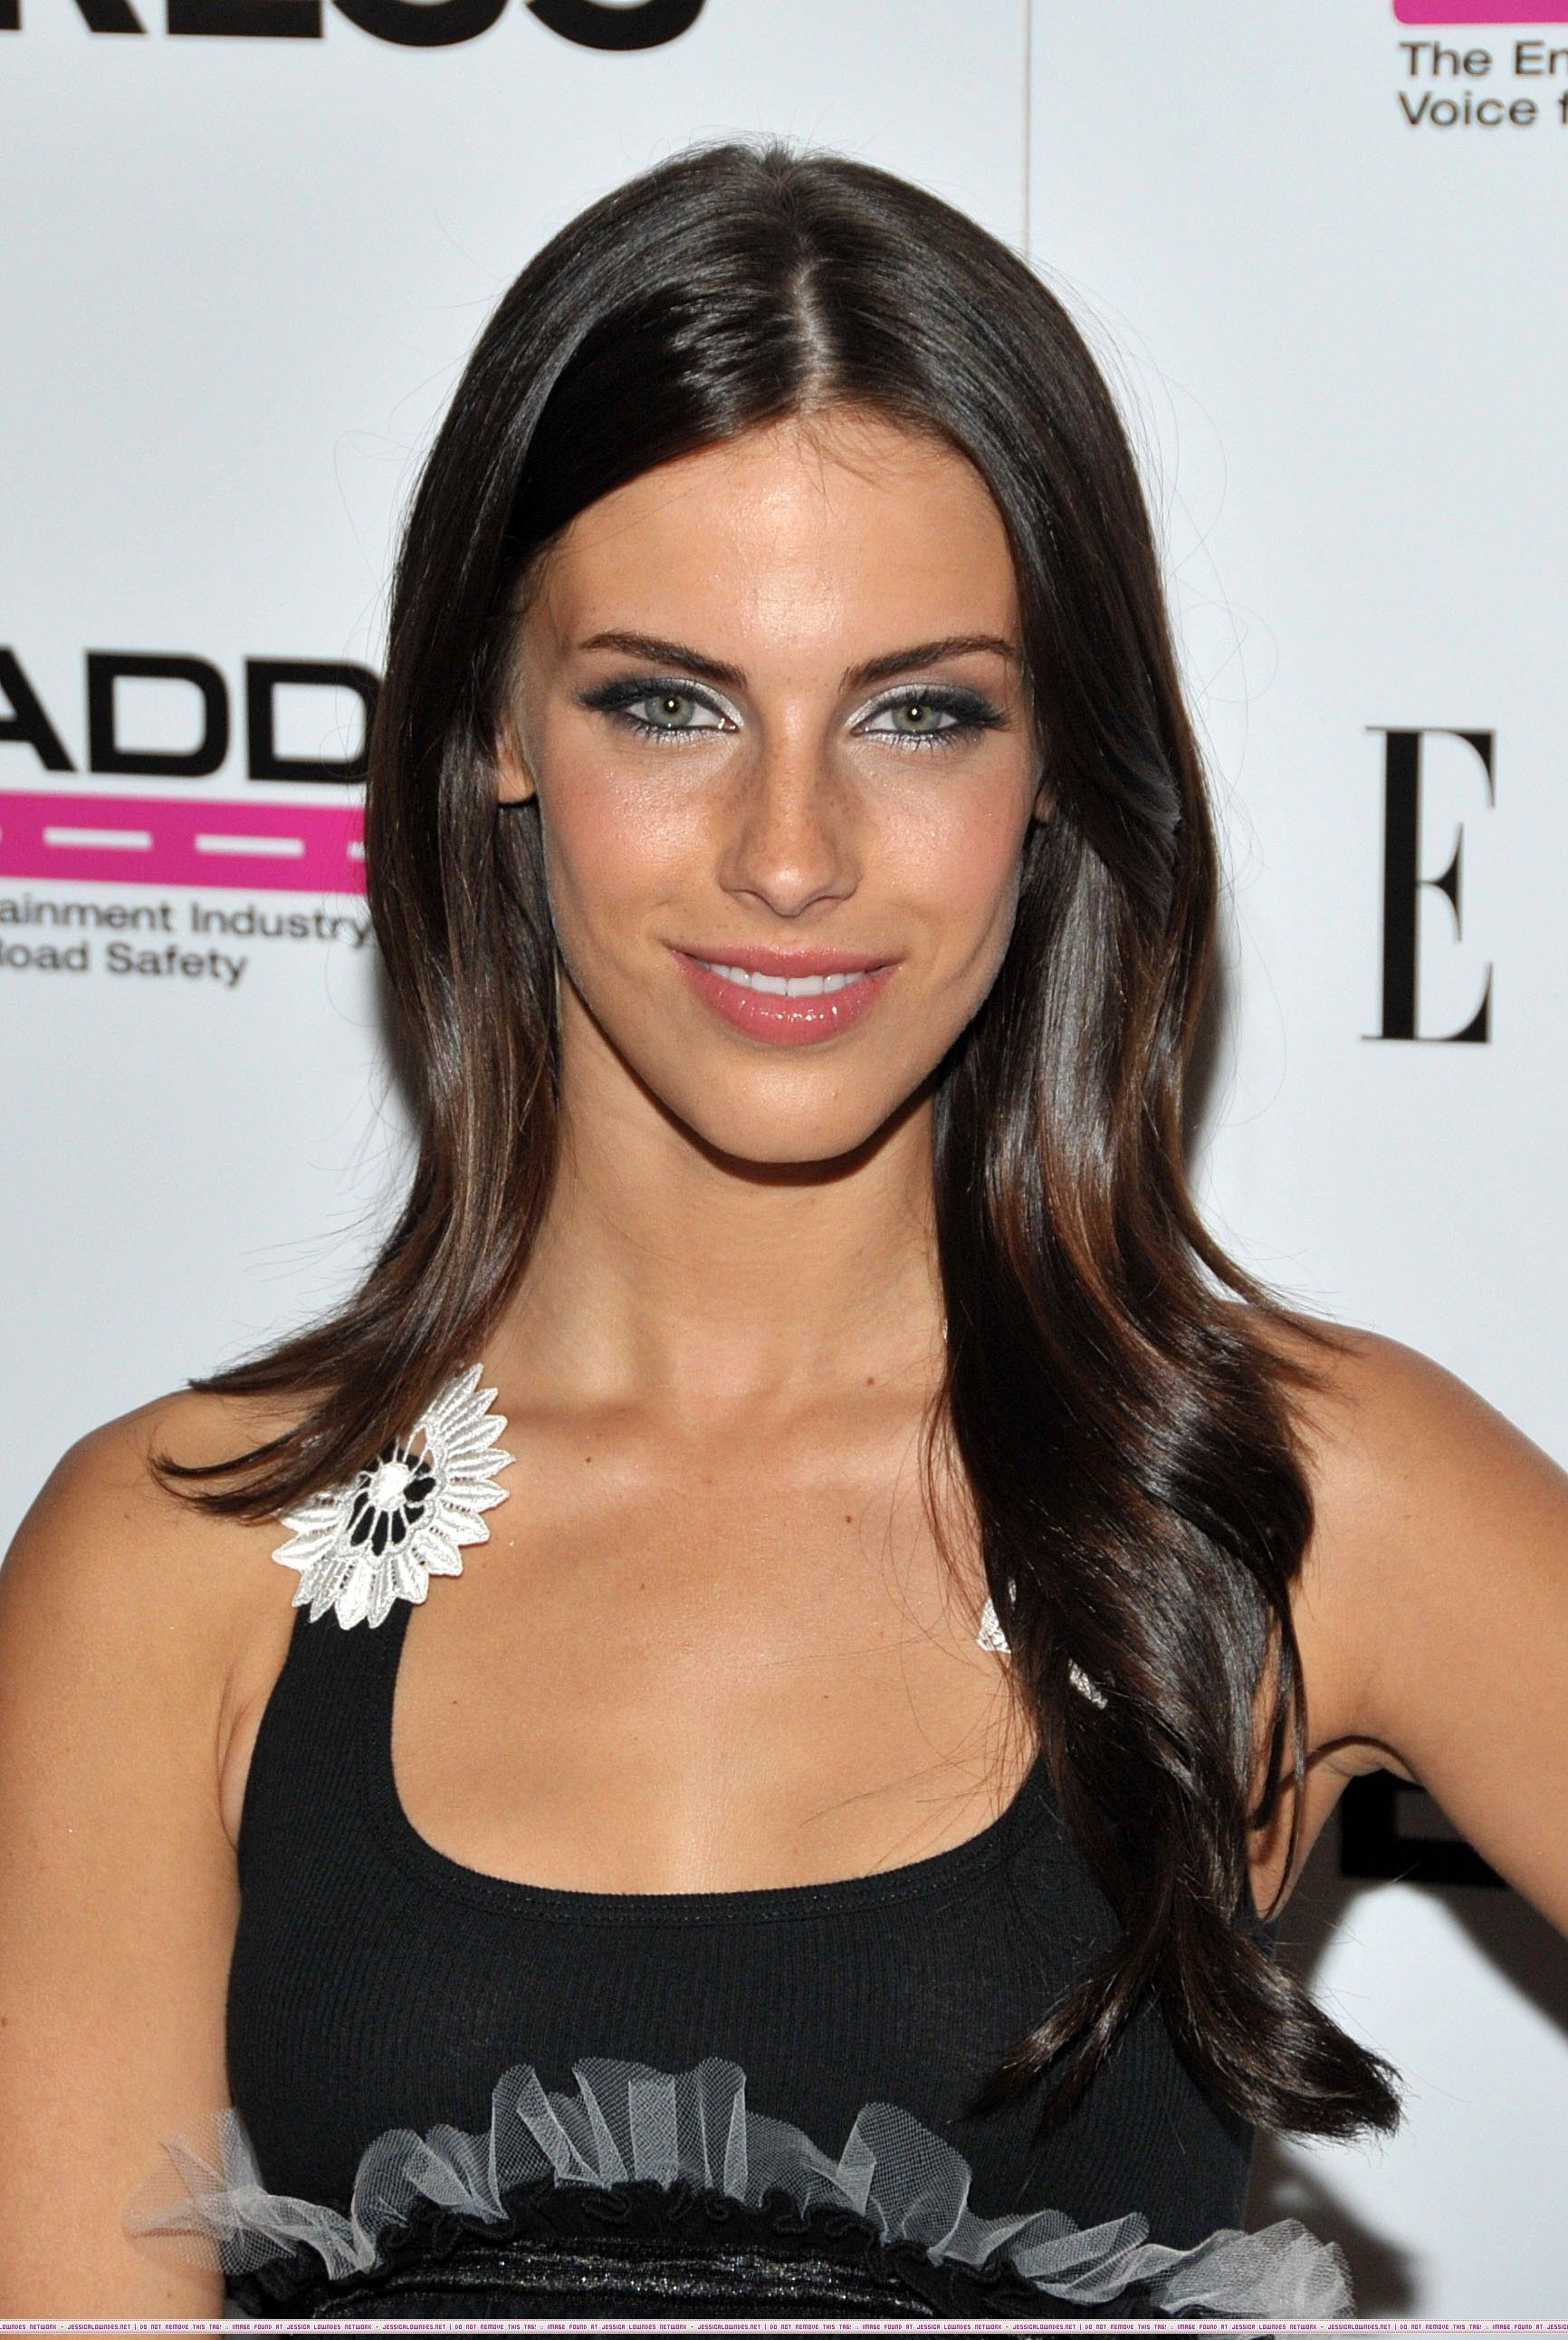 Jessica Lowndes hair 3 Adriana 90210 Jessica lowndes